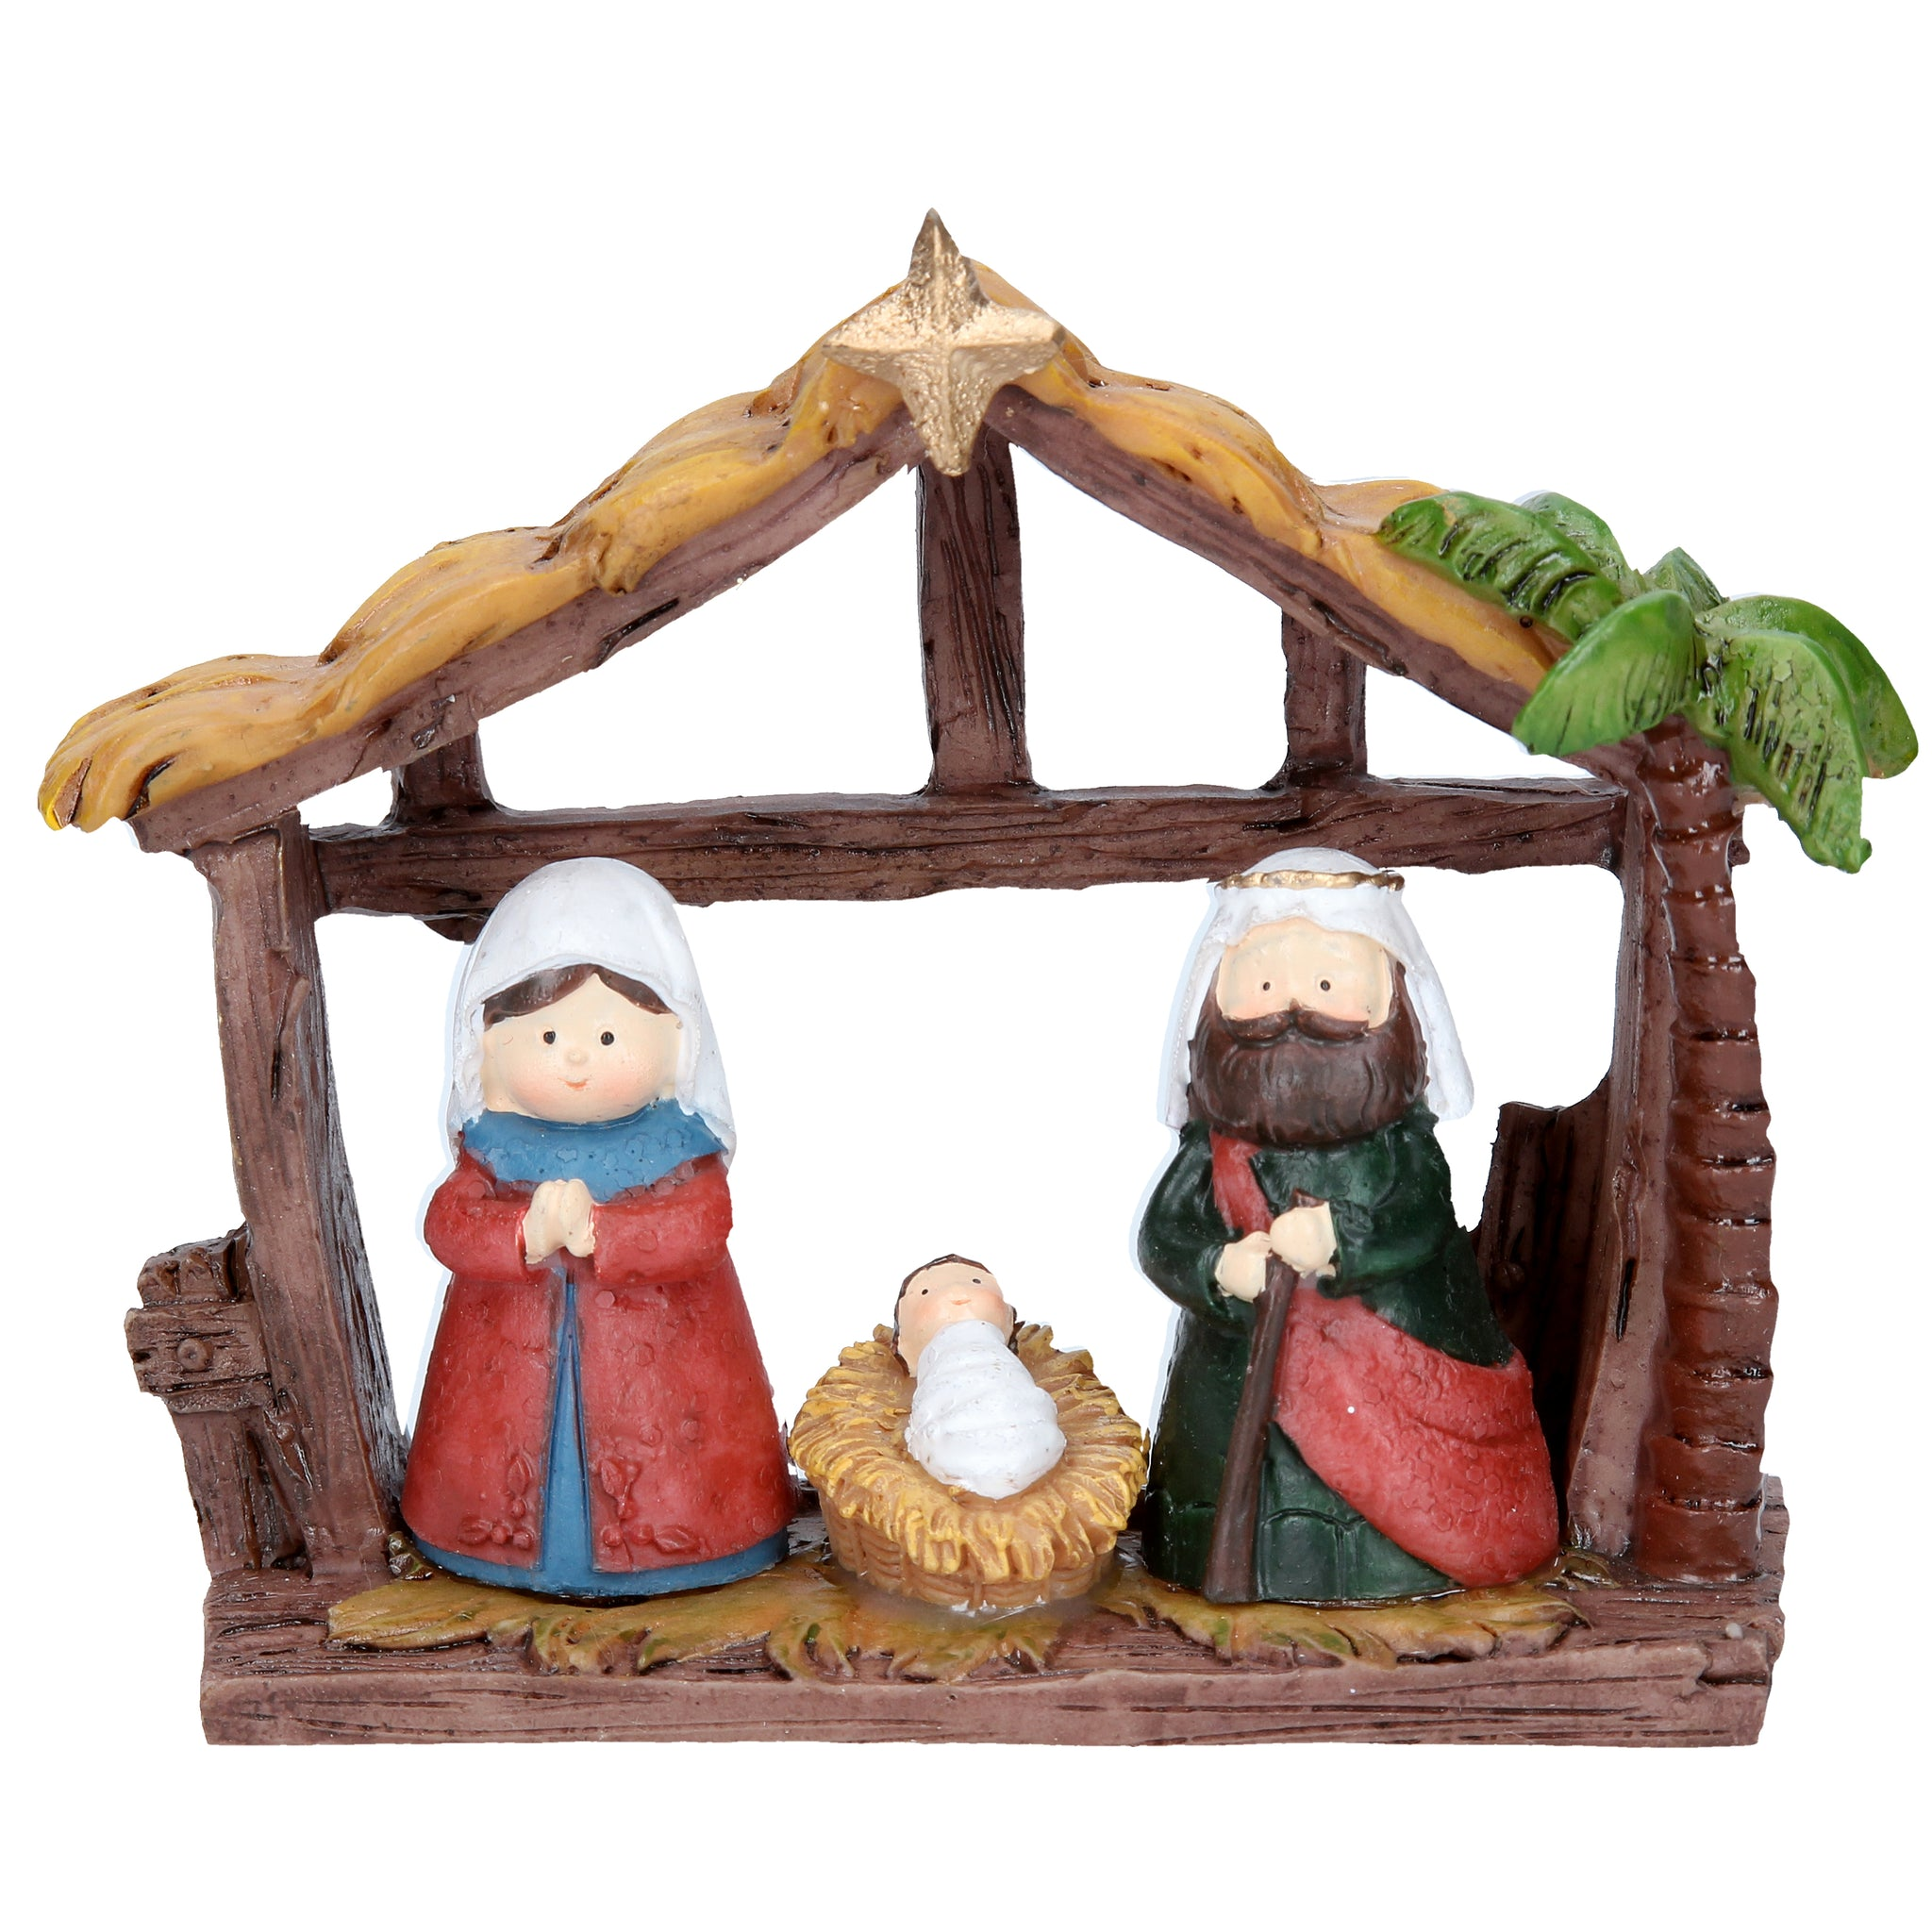 cadeauxwells - Resin Children Nativity House Ornament - Gisela Graham - Seasonal